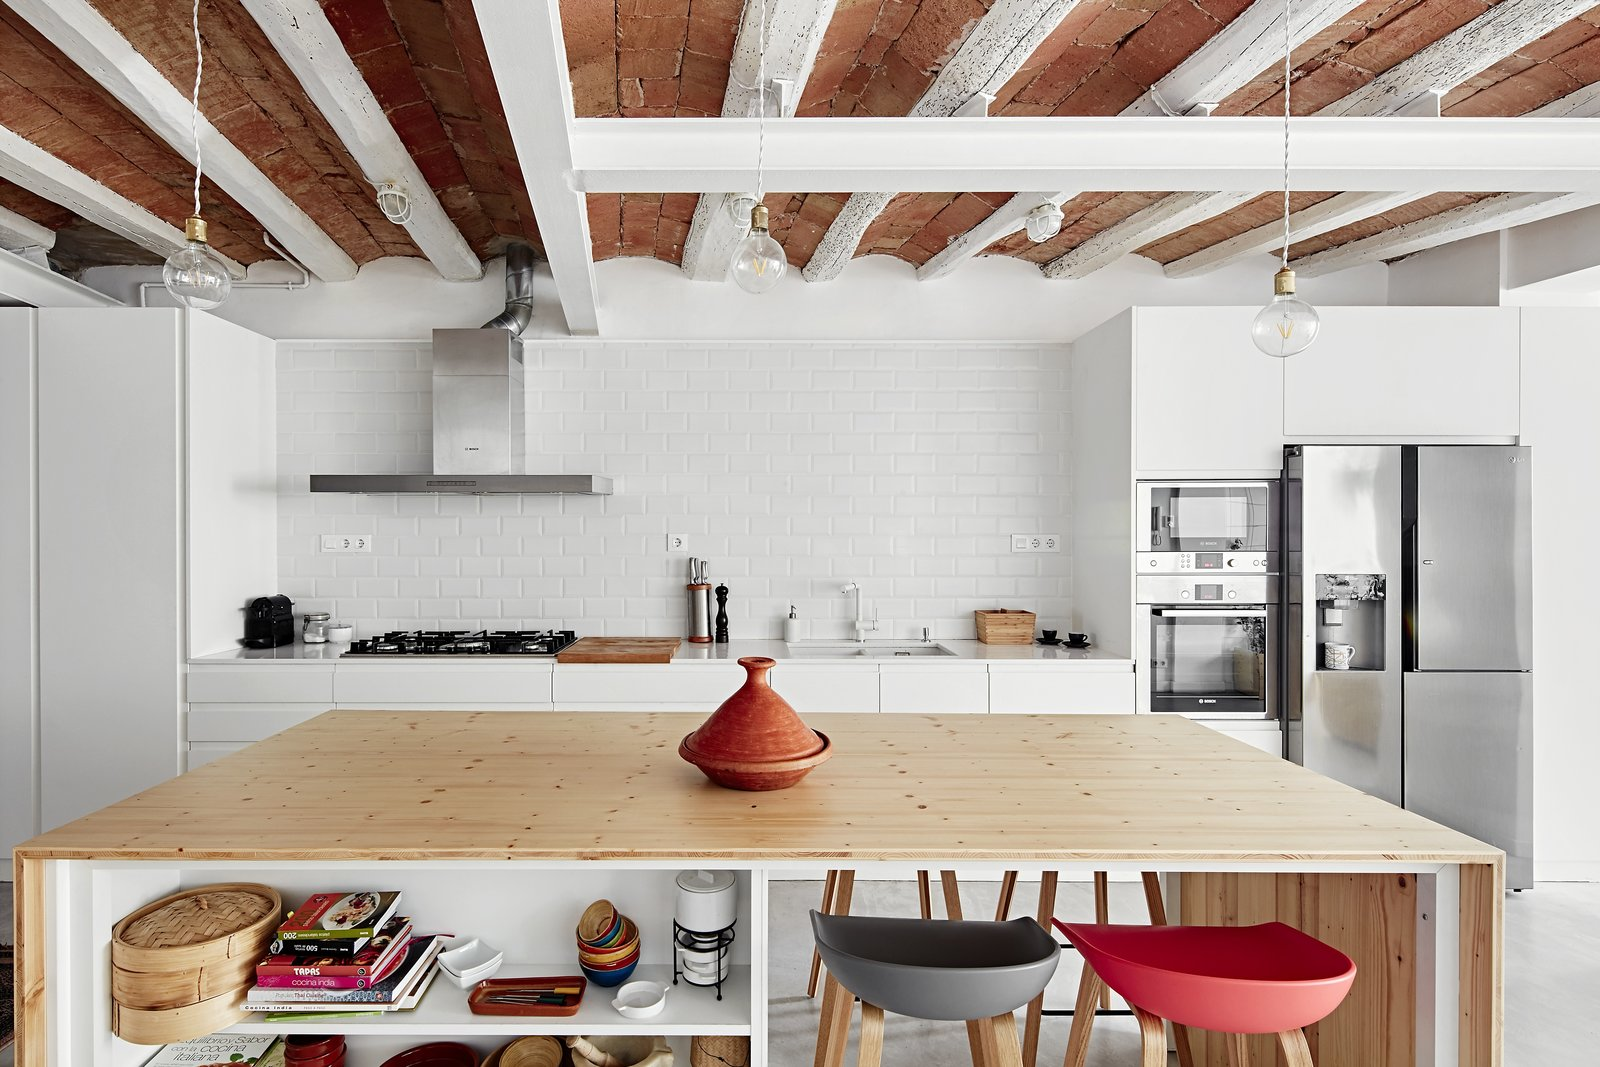 Kitchen, Microwave, Refrigerator, Wall Oven, Undermount Sink, Range, Range Hood, White Cabinet, Concrete Floor, and Pendant Lighting  Photo 9 of 11 in Can This Renovated, Loft-Like Home in Spain Be Any Dreamier?